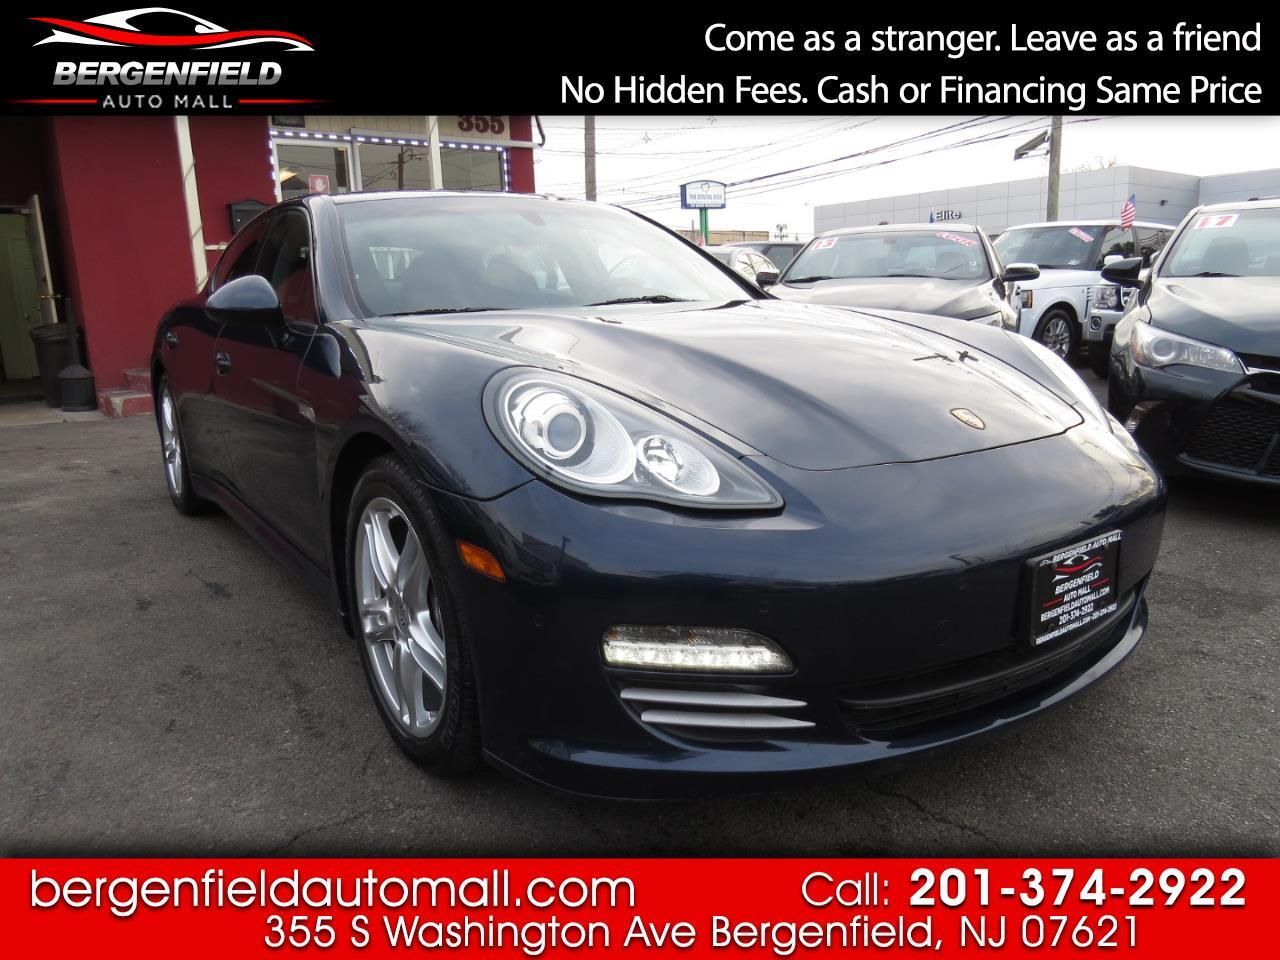 Used Porsche Panamera Bergenfield Nj